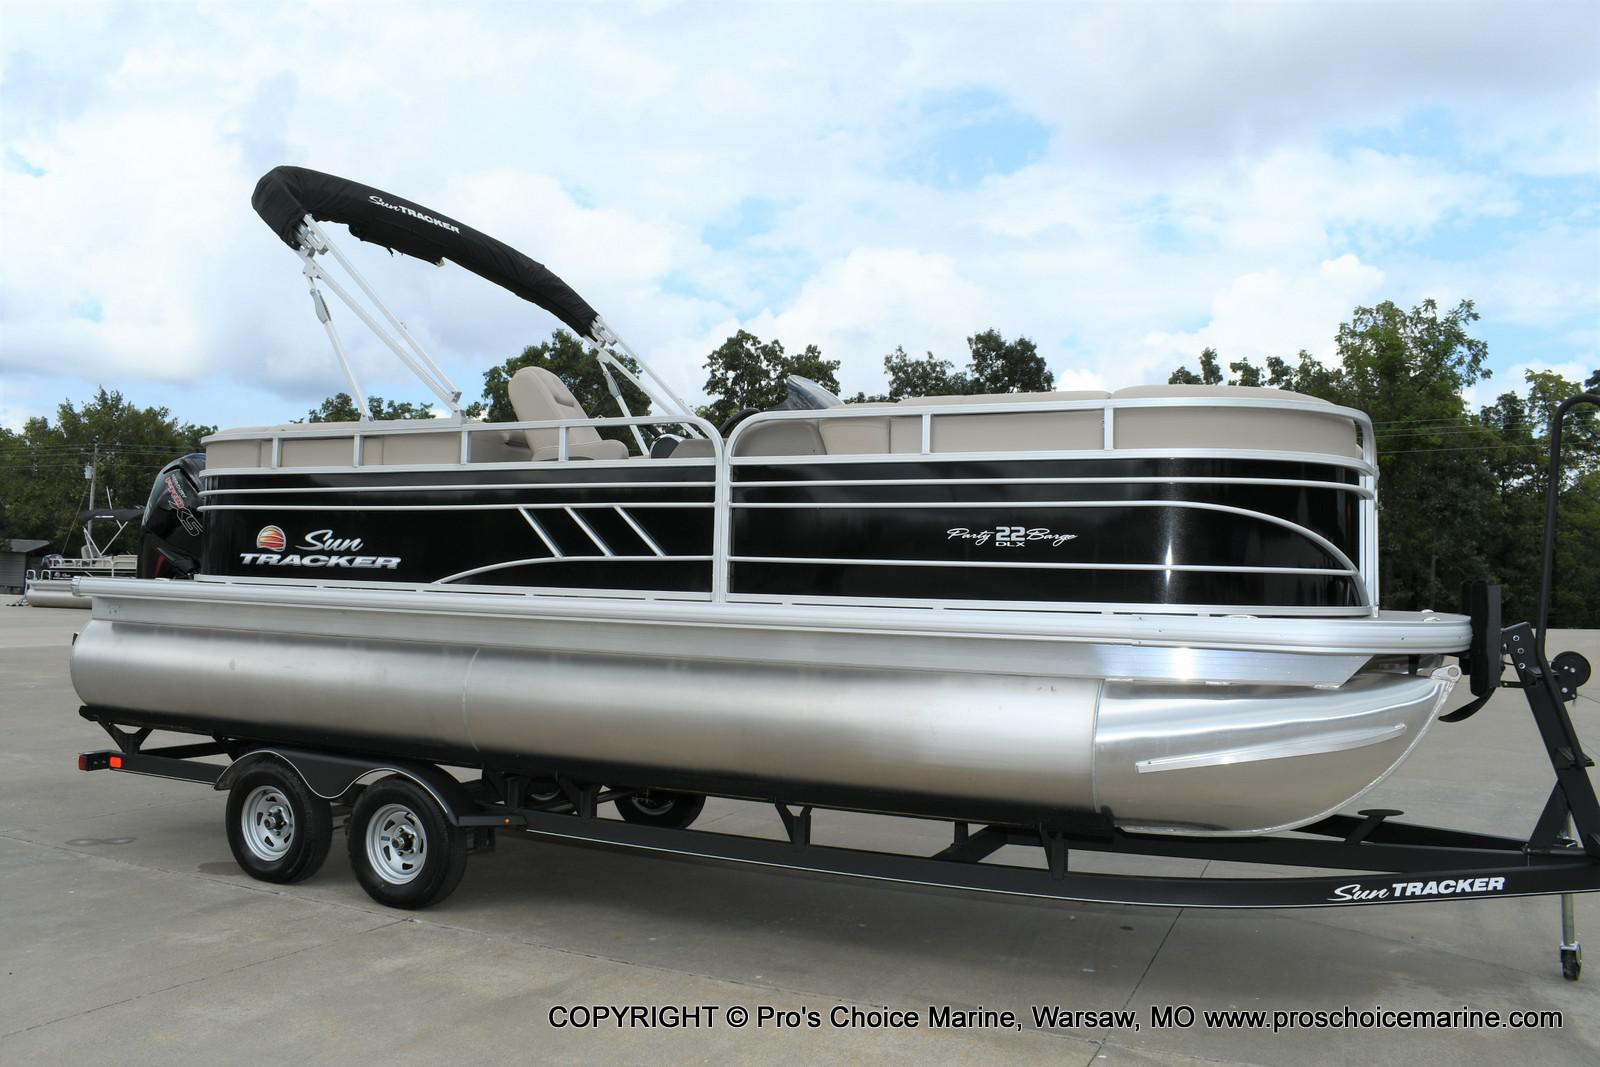 2020 Sun Tracker boat for sale, model of the boat is Party Barge 22 DLX & Image # 42 of 50